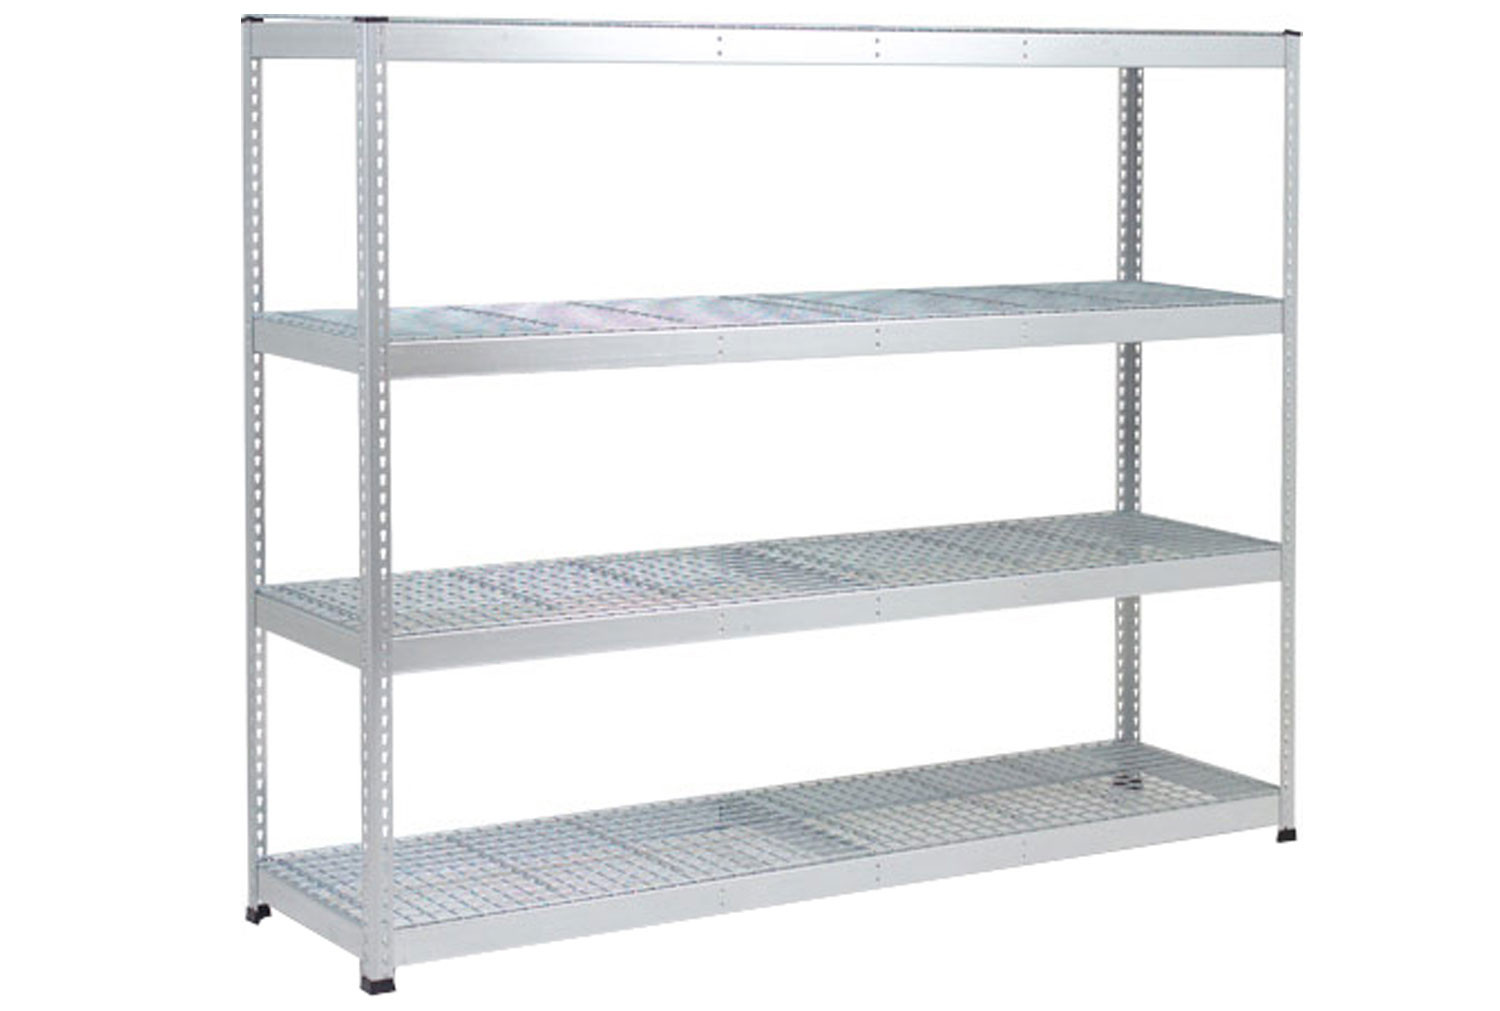 Rapid 1 Heavy Duty Galvanized Shelving With 4 Wire Mesh Shelves 2440wx1980h